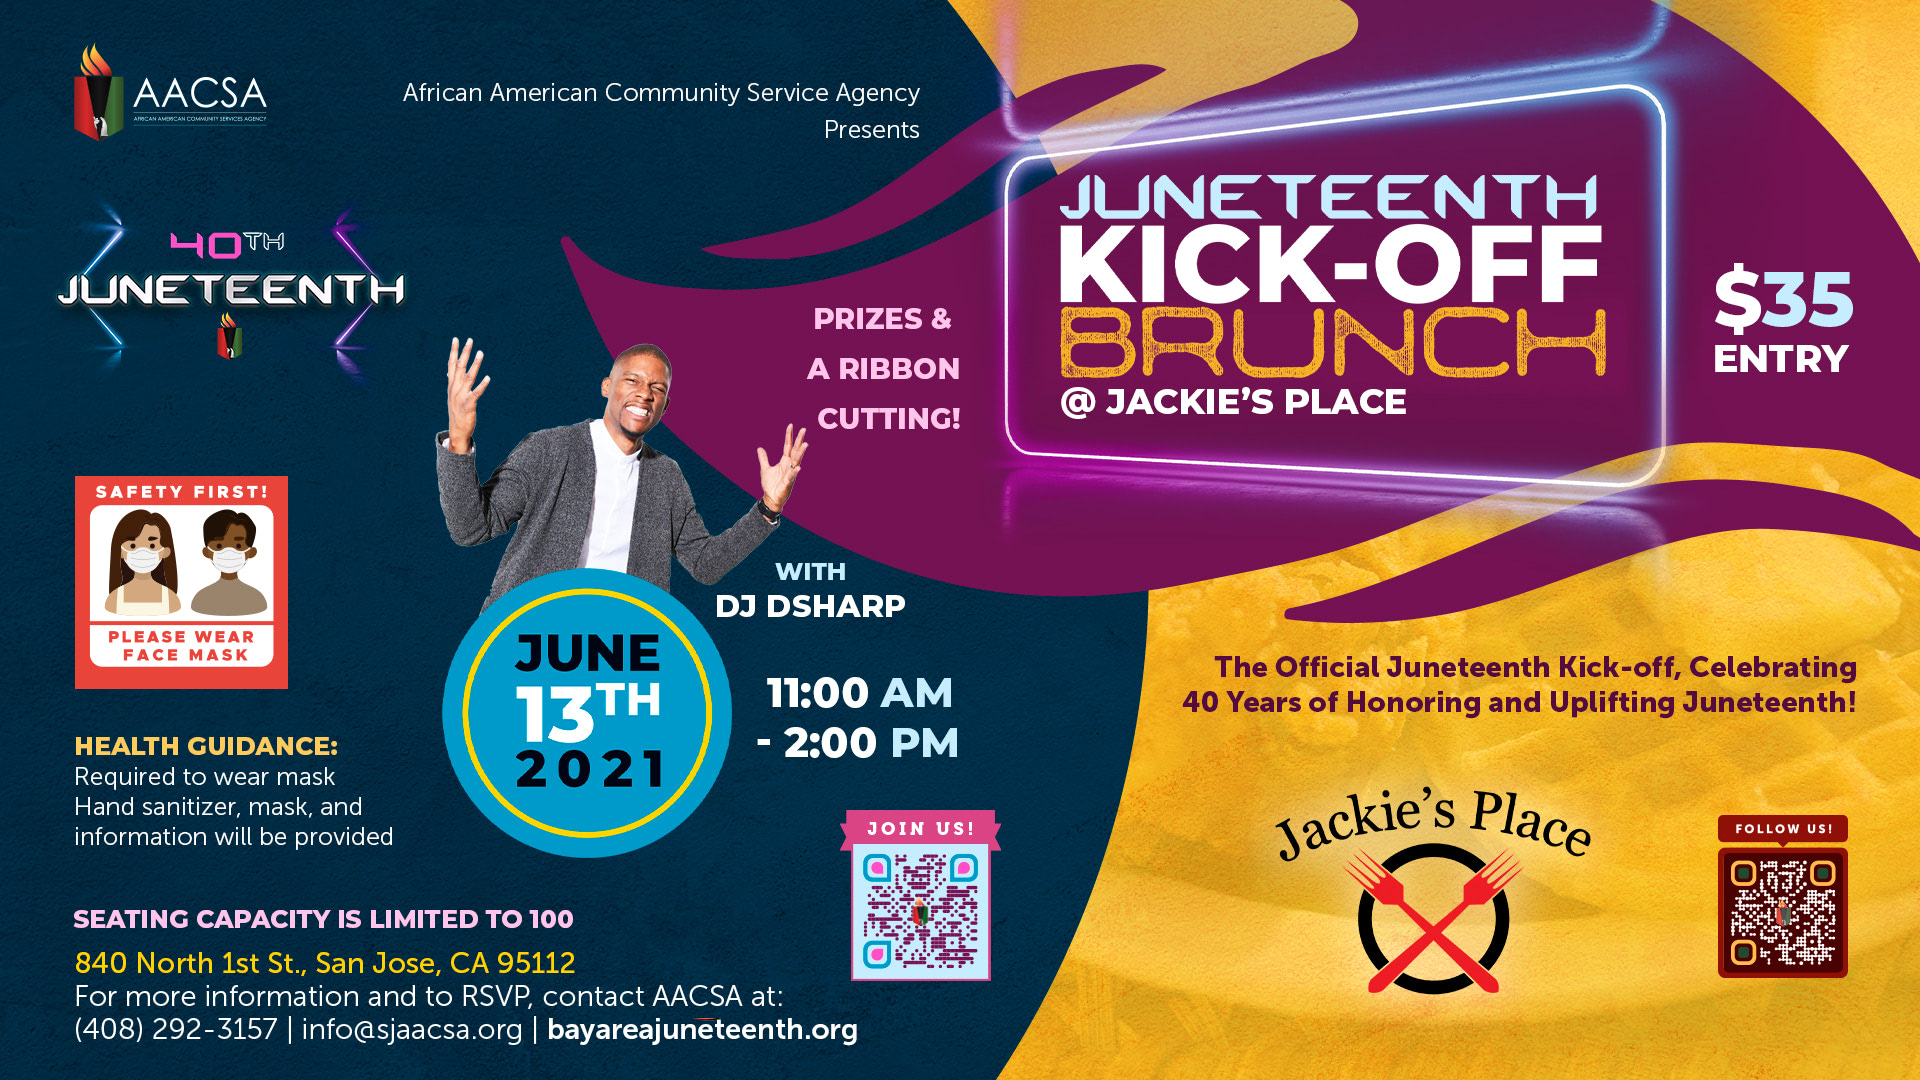 Banner for the 40th Annual Juneteenth In The Park Celebration Week event: The Juneteenth Kick-Off Brunch at Jackie's Place with DJ DSharp. June 13th 11:00am until 2:00pm PST. $35 entry includes meal. Click the banner to see event details & sign-up!